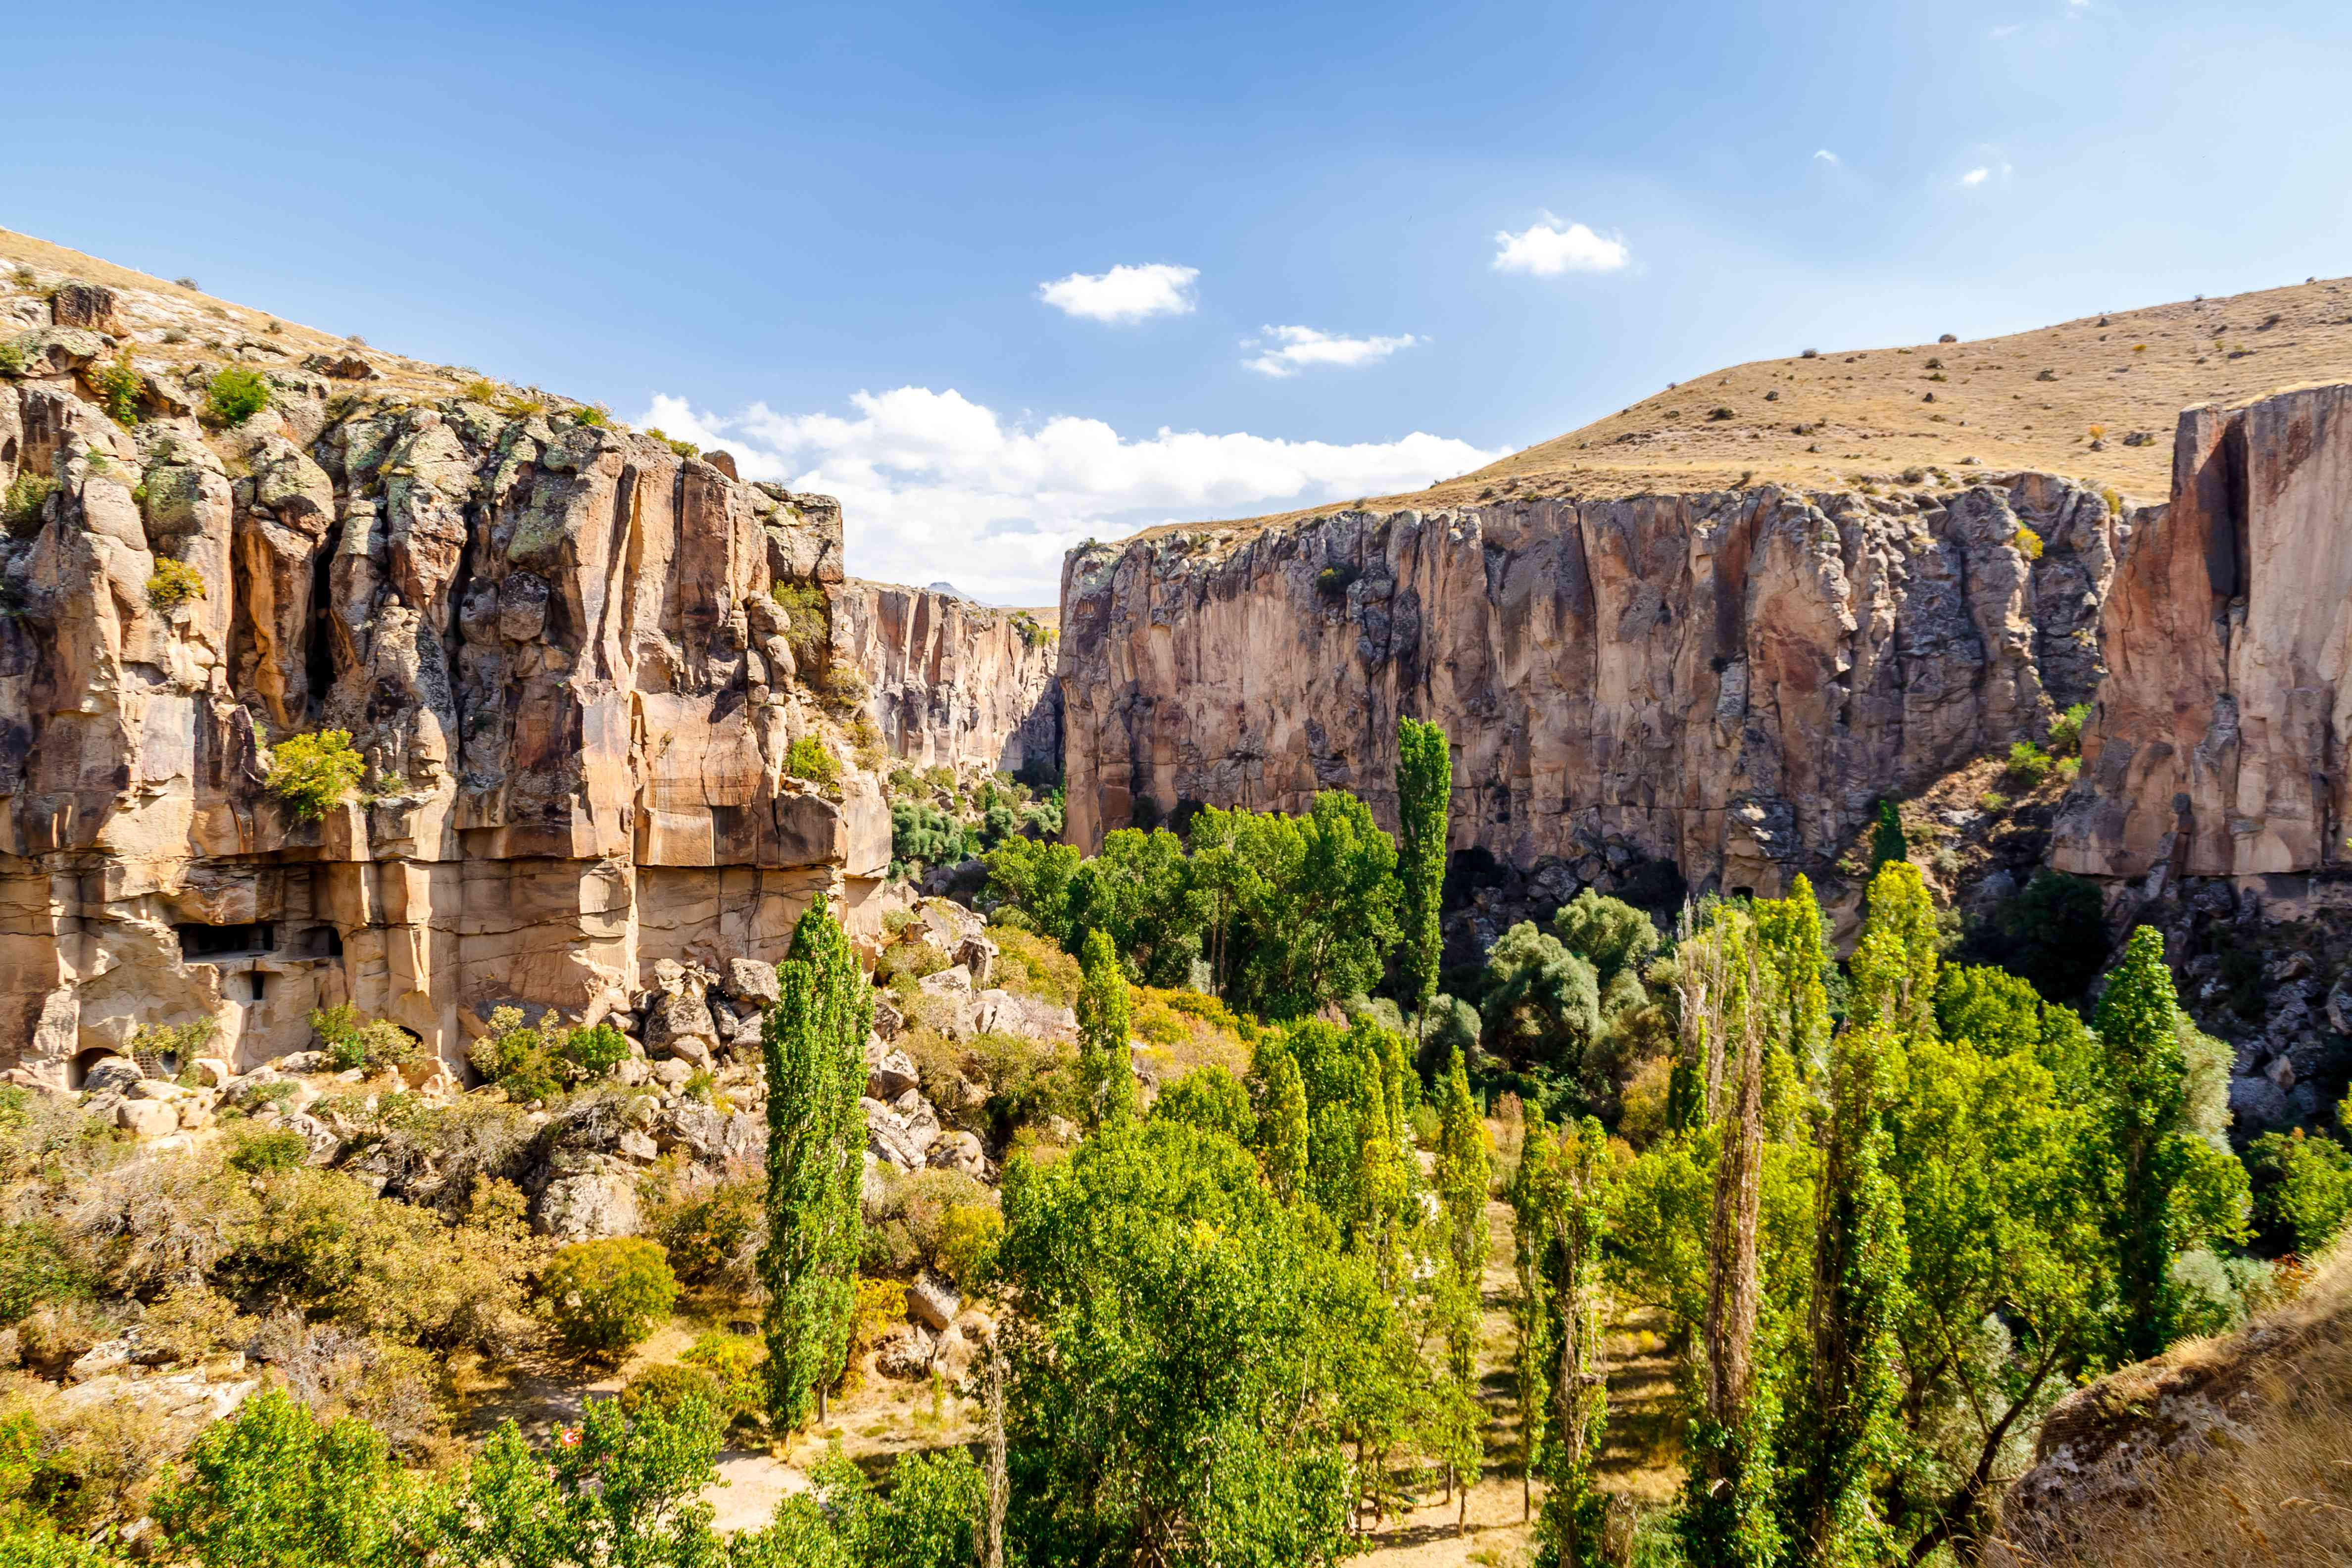 View of trees in the deep gorge of Ihlara Valley in Cappadocia.